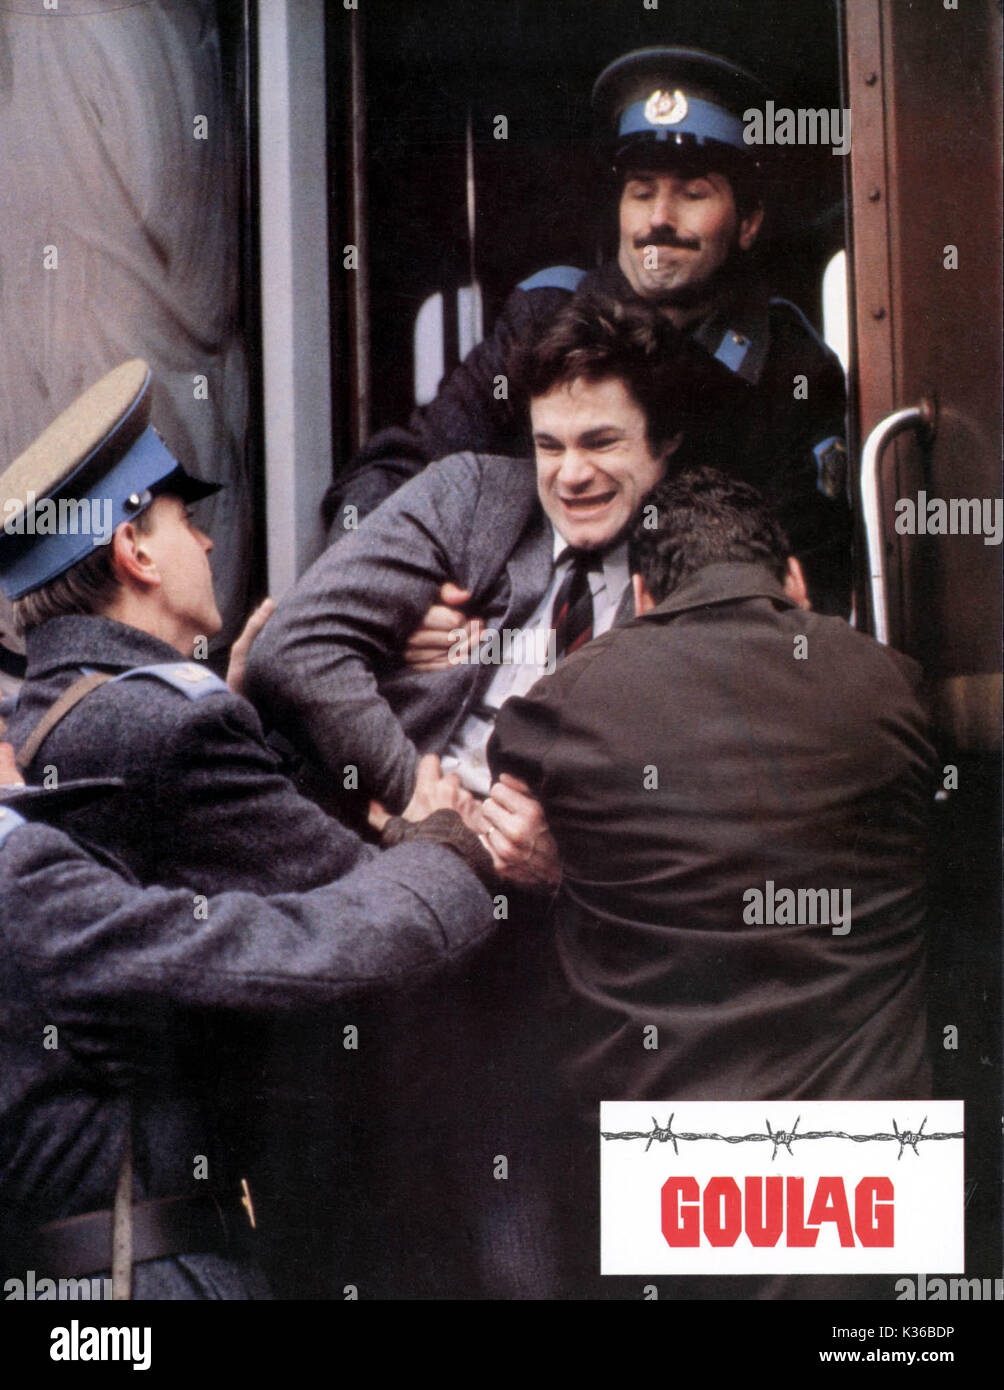 GULAG David Keith as Mickey Almon being arrested by the KGB     Date: 1985 - Stock Image